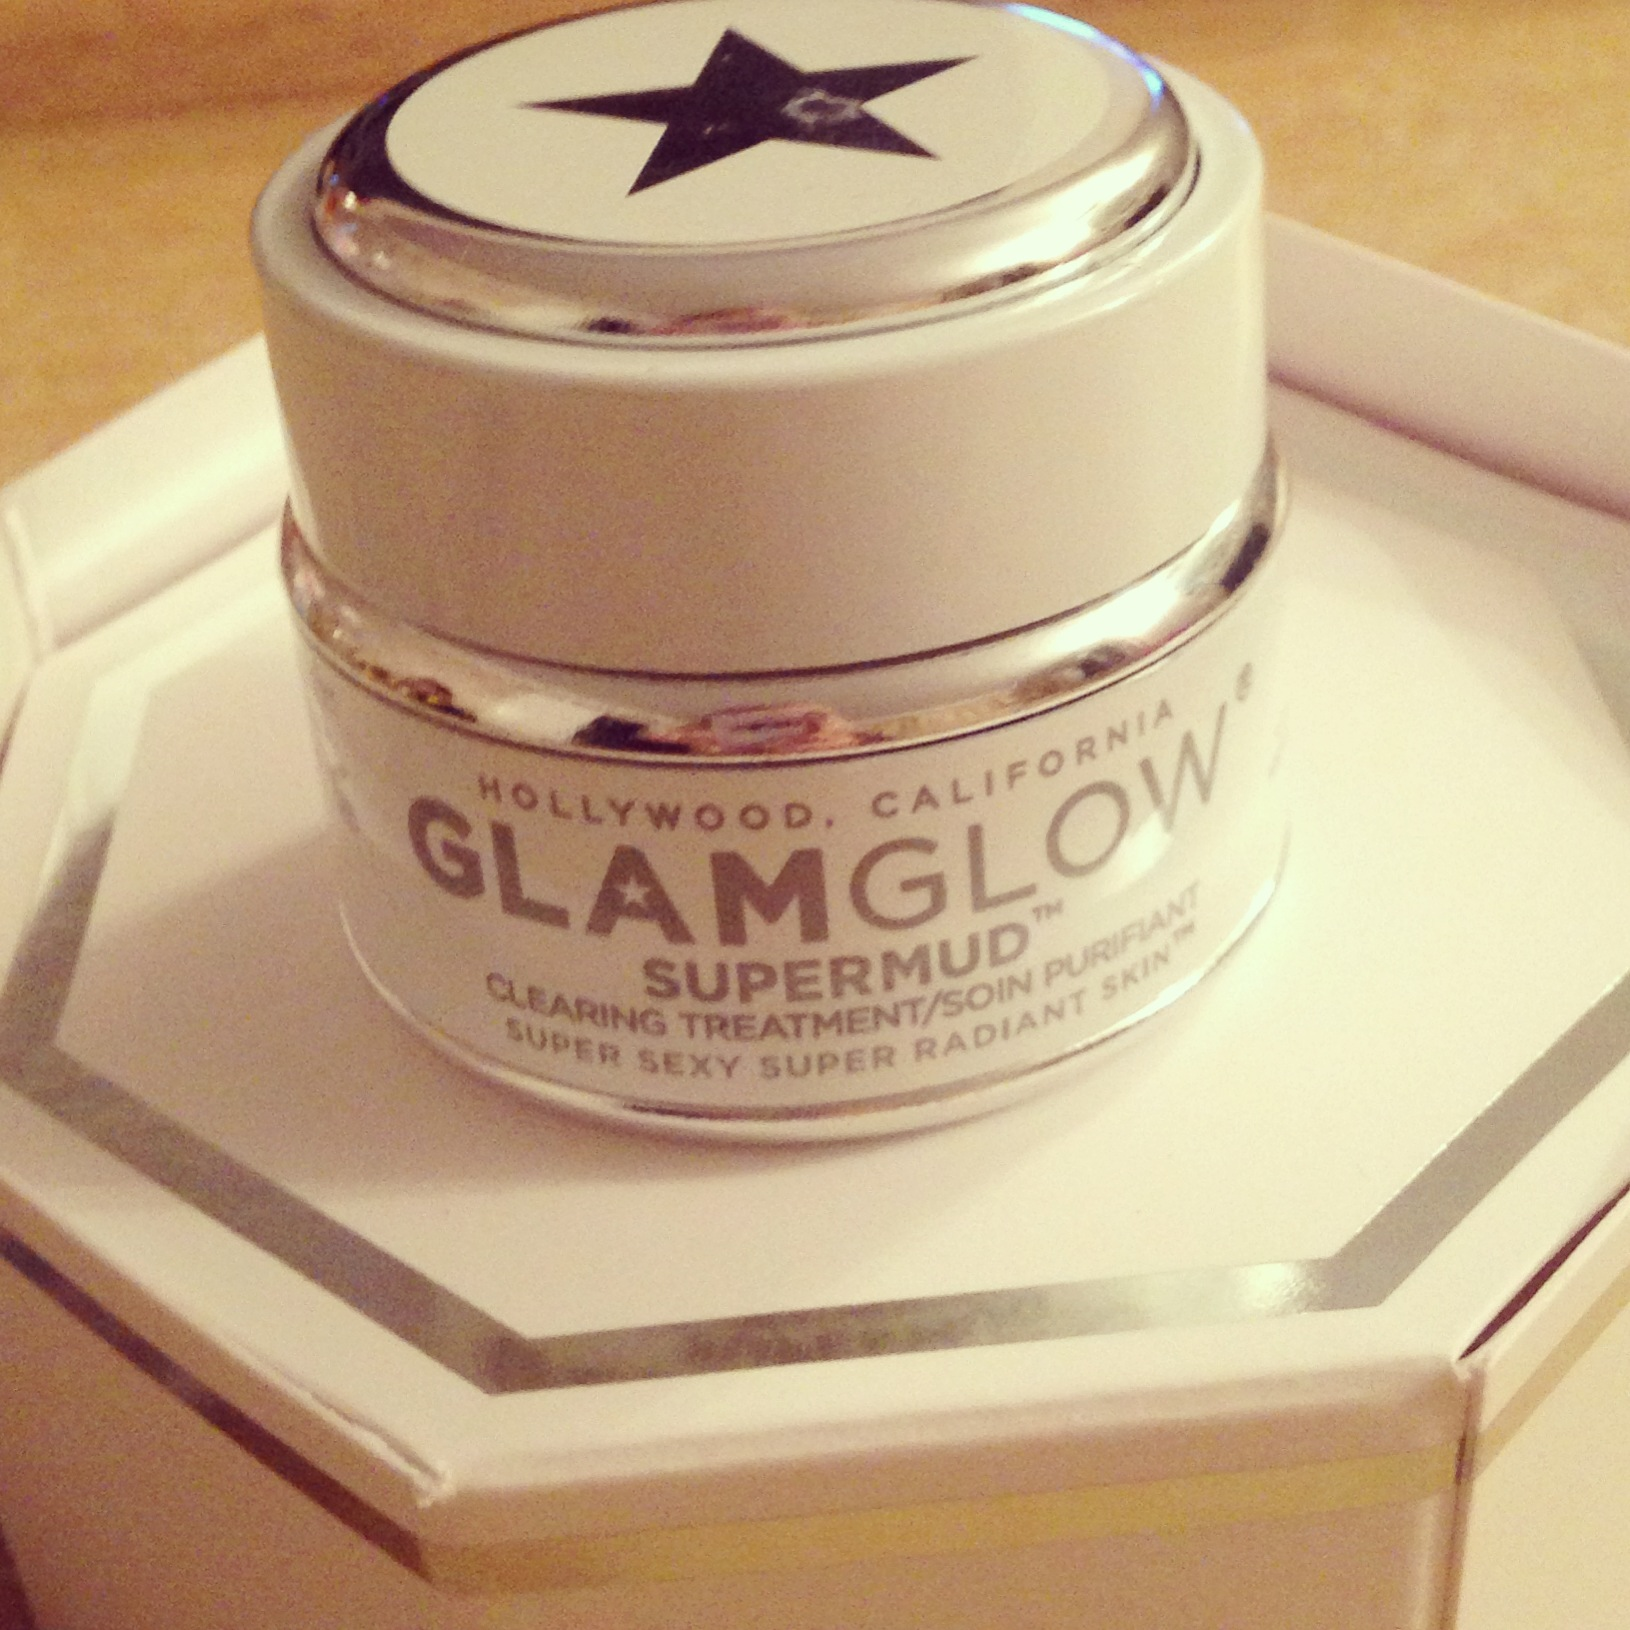 GLAMGLOW SUPERMUD Clearing Treatment ~ Review